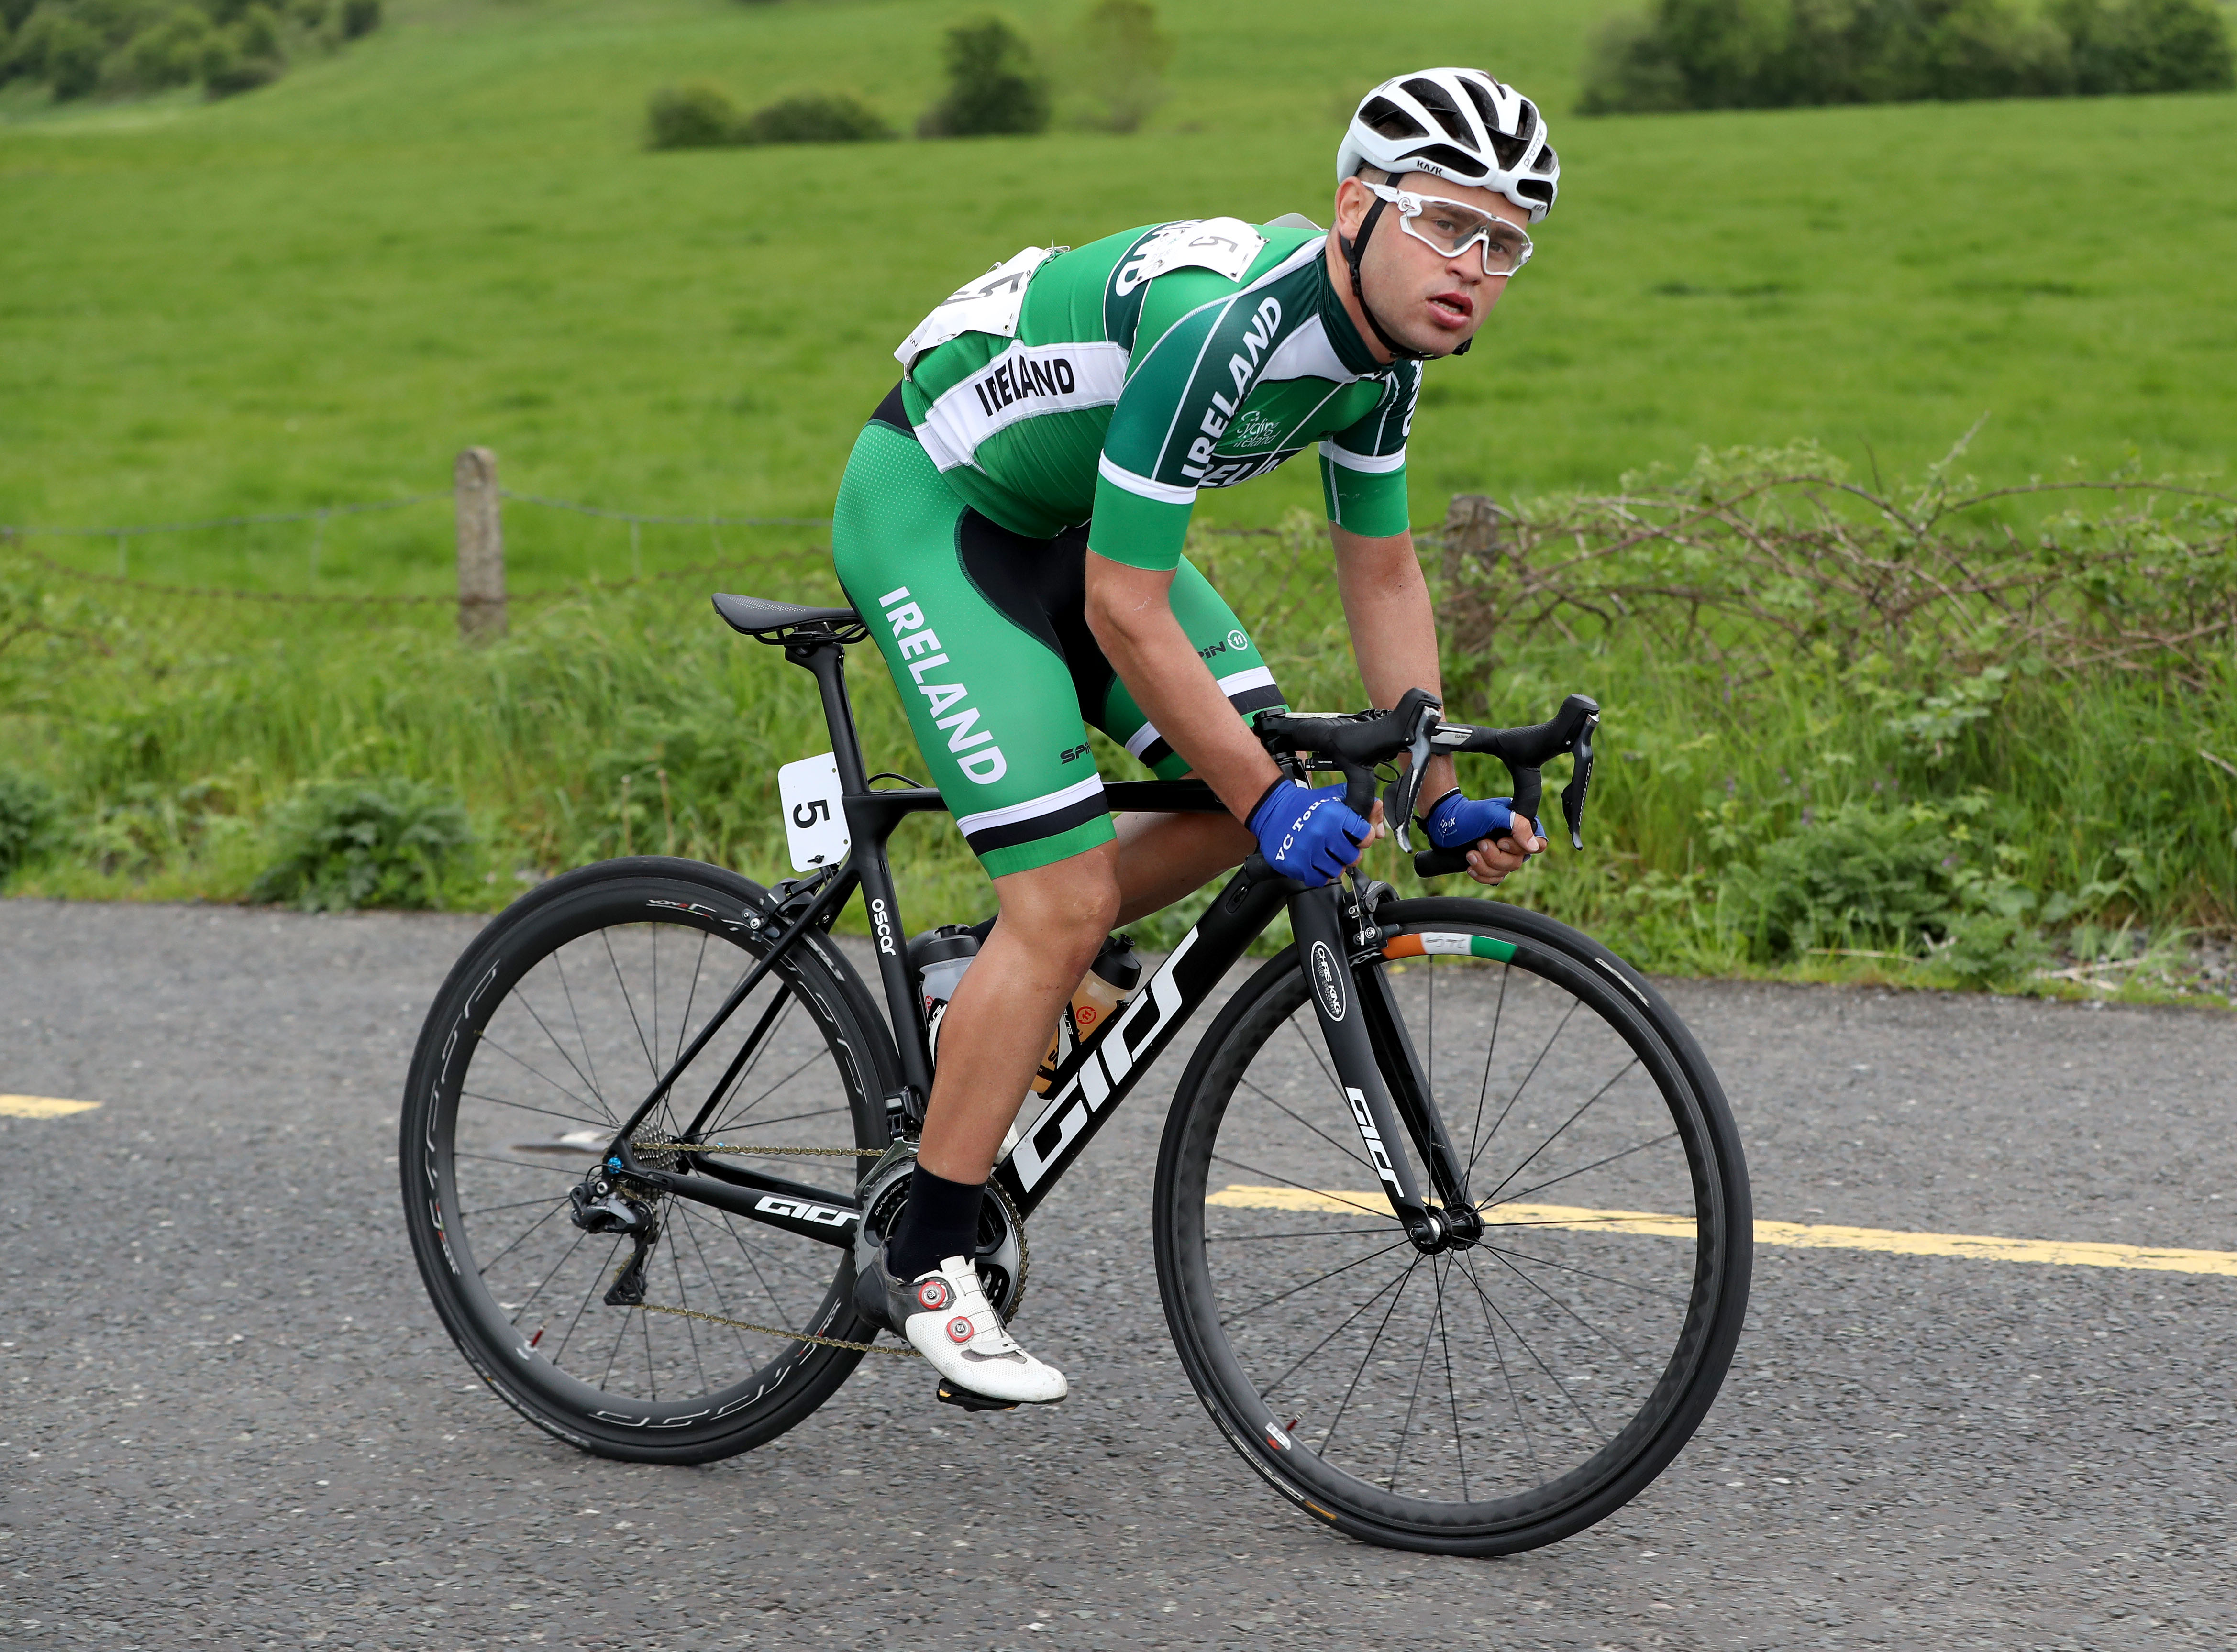 e6ab5cf02 Irish cyclist Jake Gray will be riding in the pro bunch when the flag drops  for the European road racing season. He has just secured a place on a UCI  ...